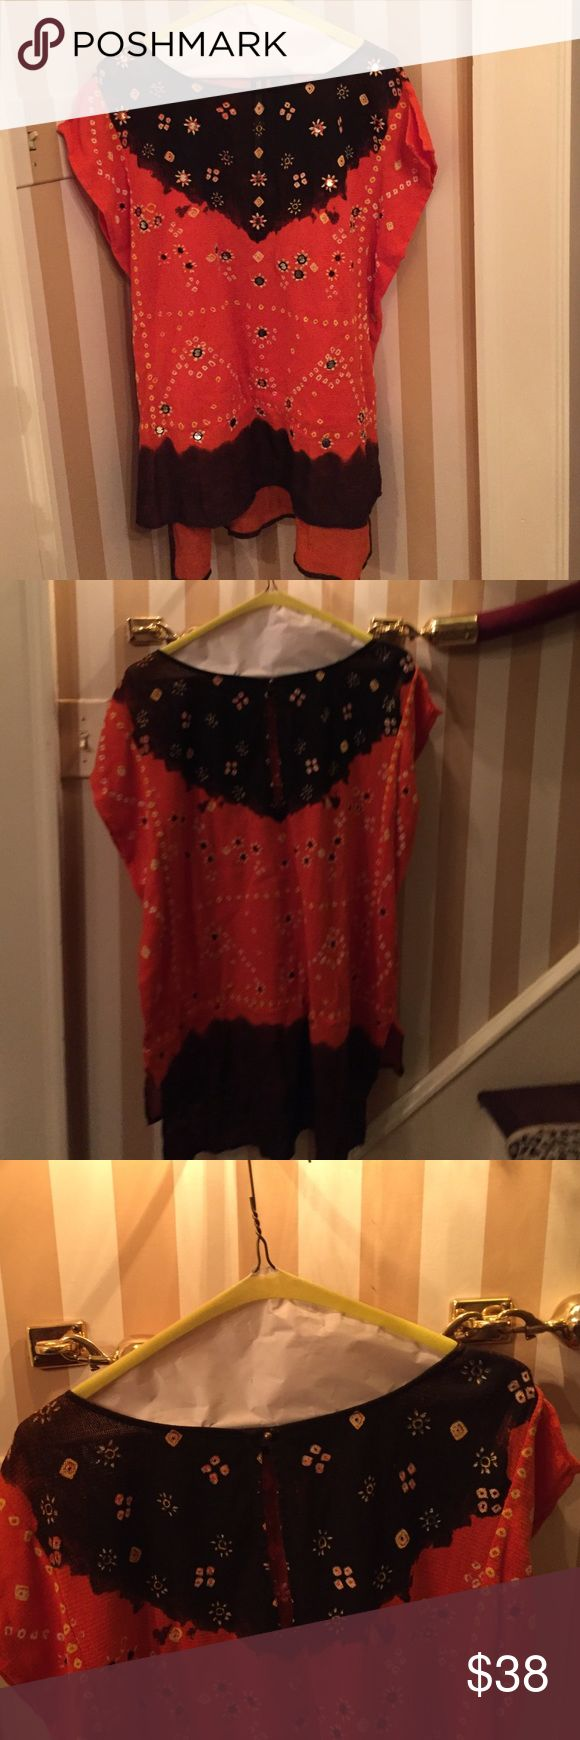 Hippie Chic Bohemian Blouse/Tunic. XS/TP Unique Blouse/Tunic. Longer in Back. Great with leggings, boots, cut-offs, jeans, etc. Cute Mirror details. New Romantics by Free People. XS/TP Free People Tops Blouses